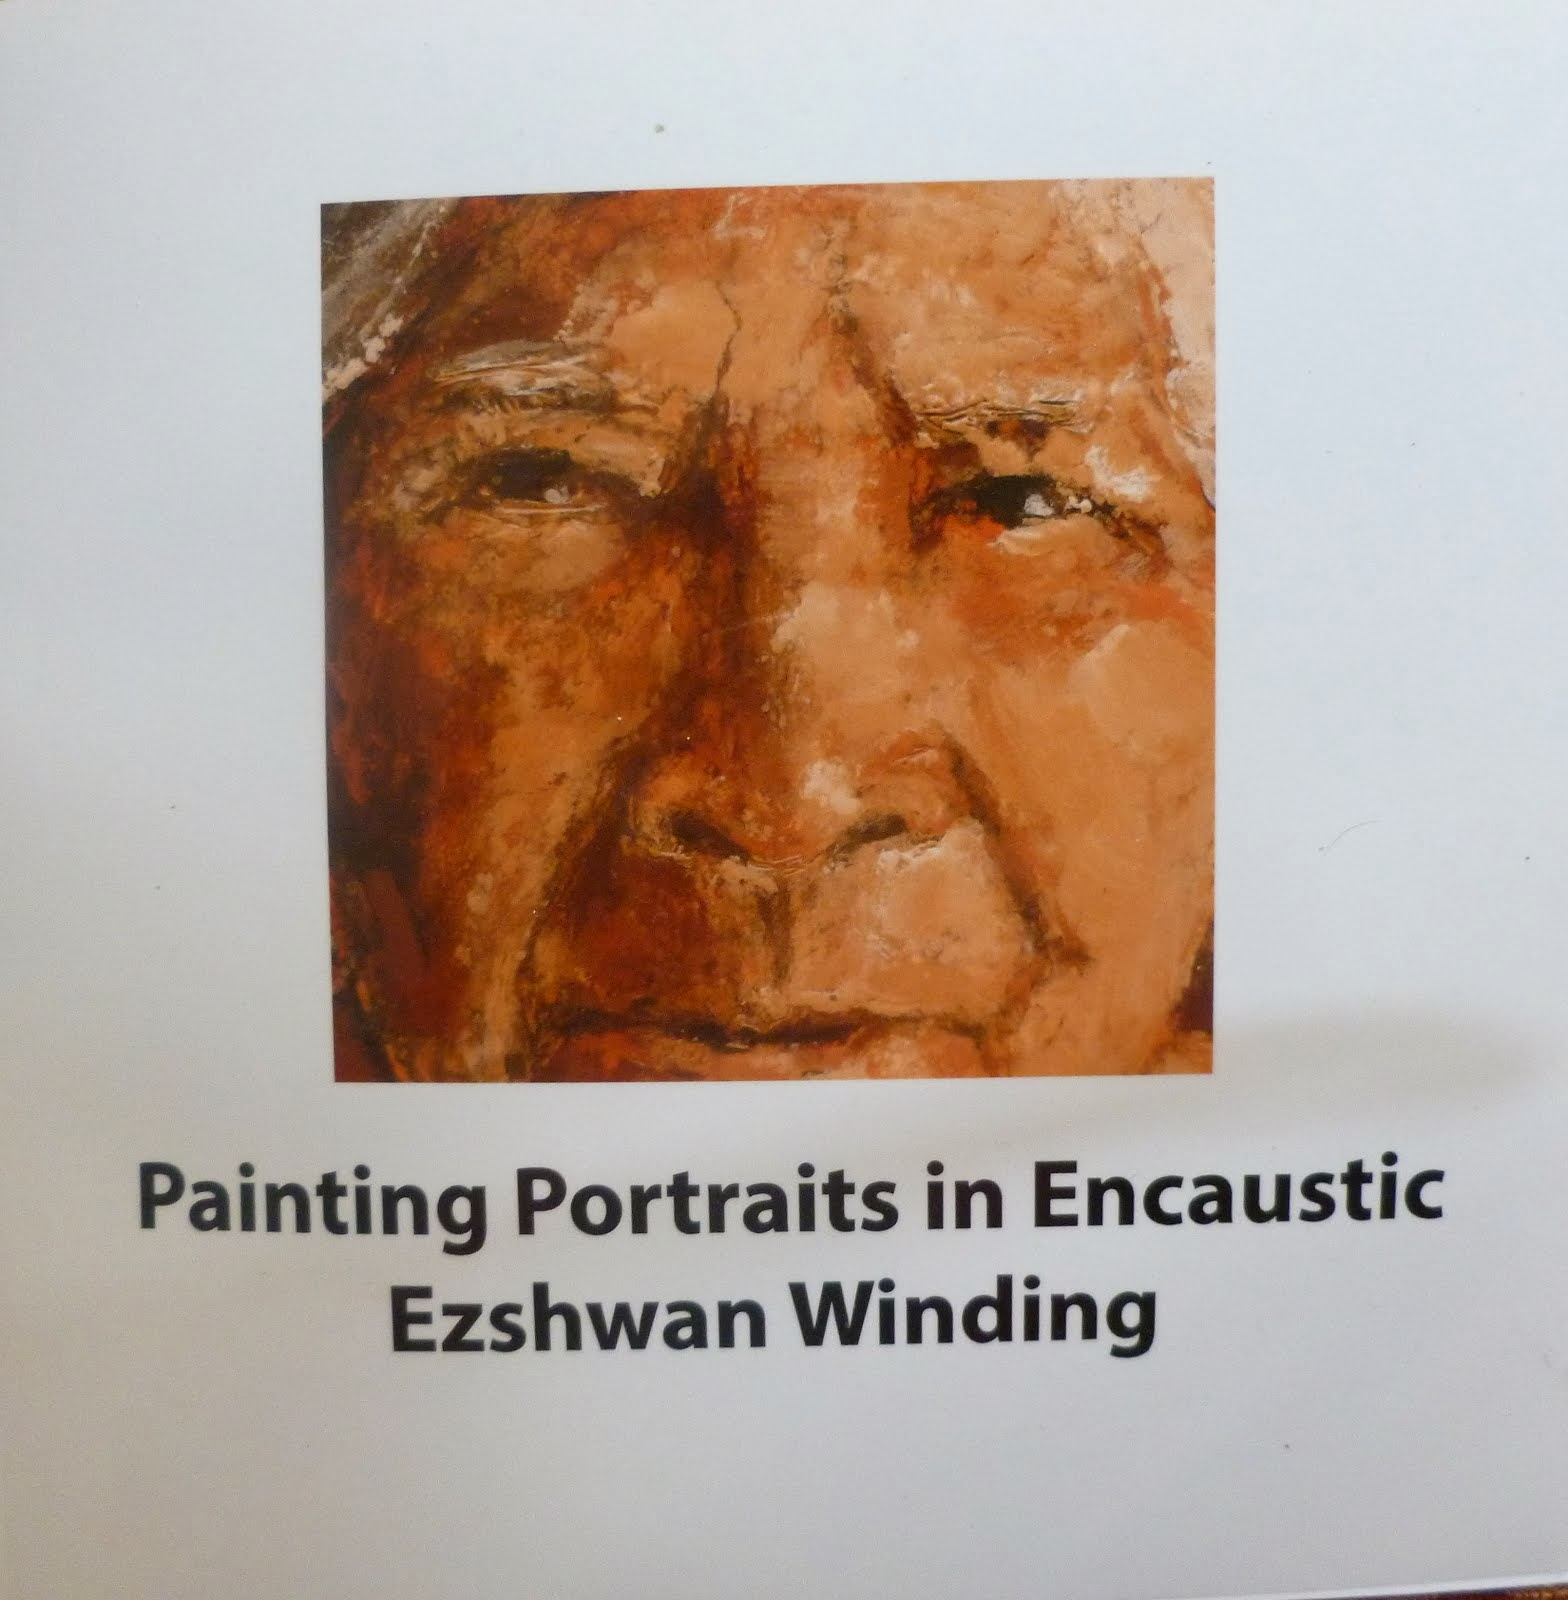 Painting Portraits in Encaustic